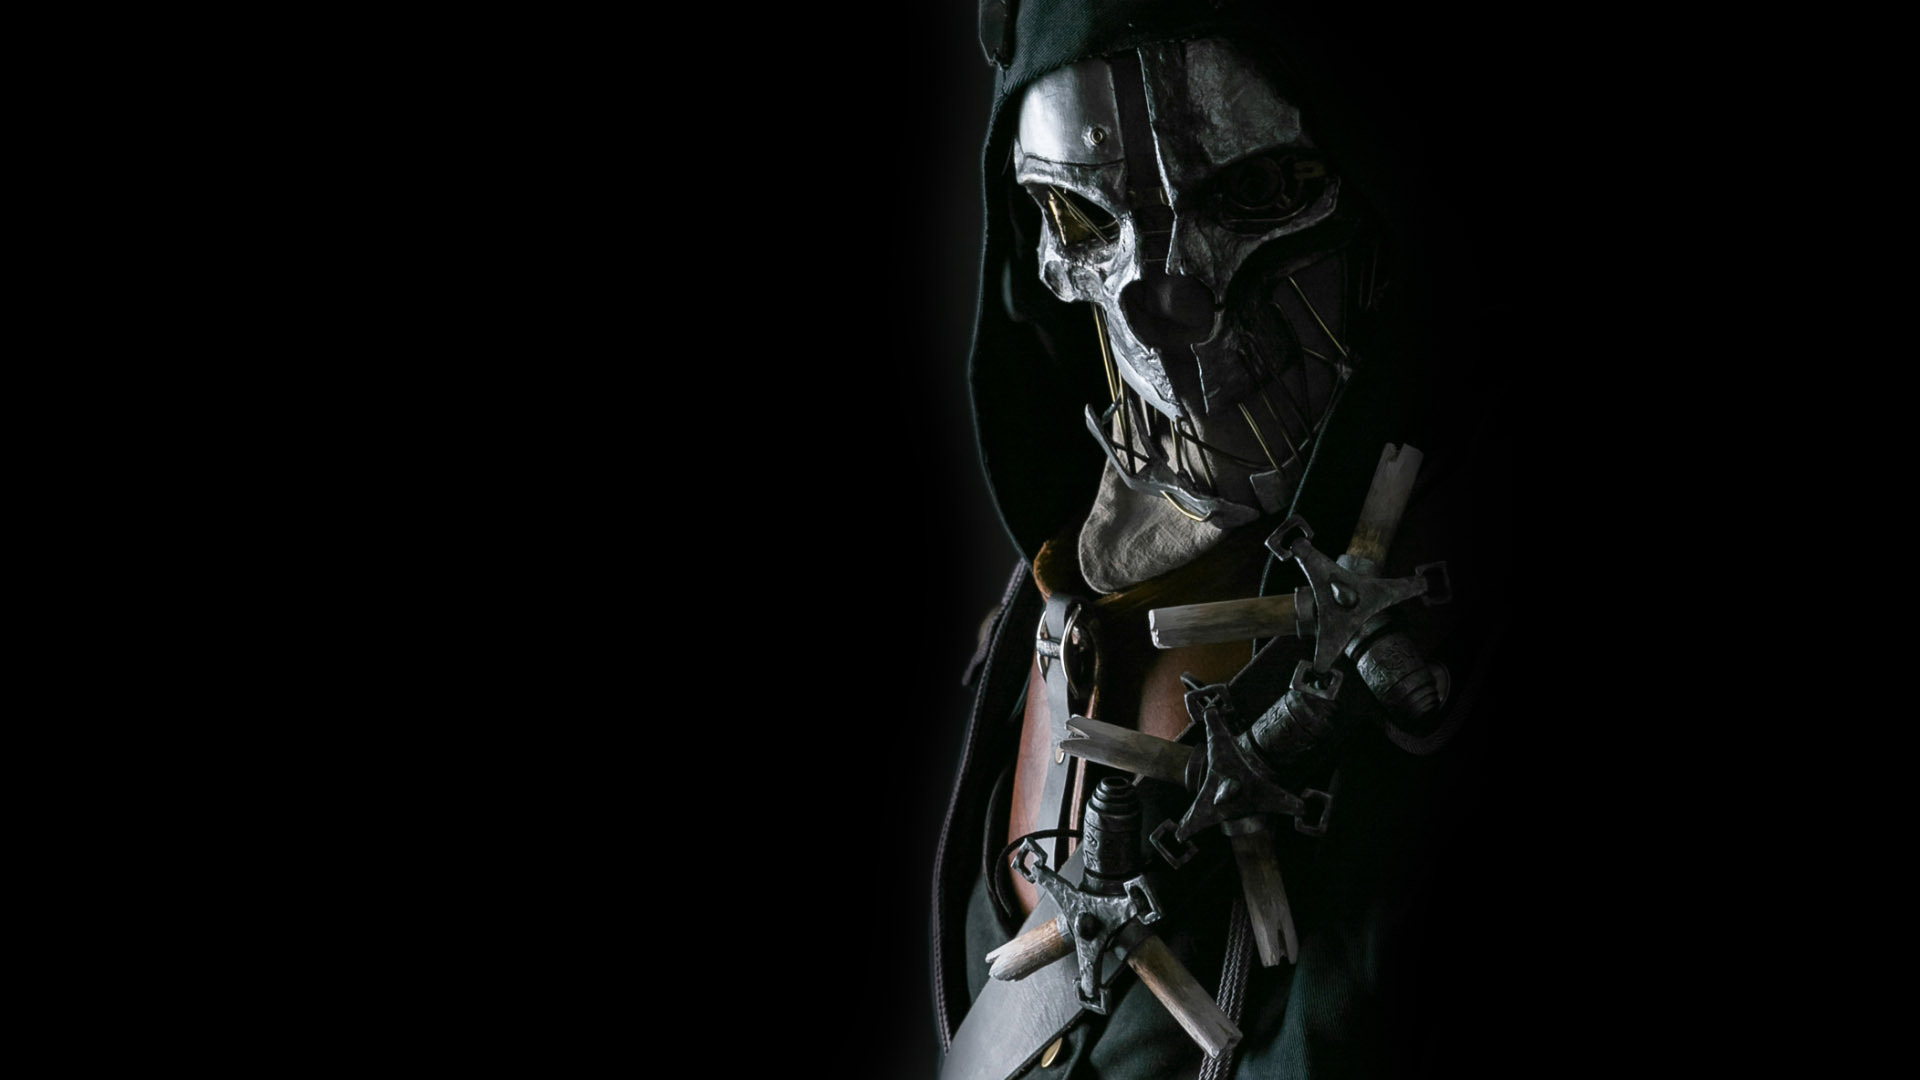 dishonored A6